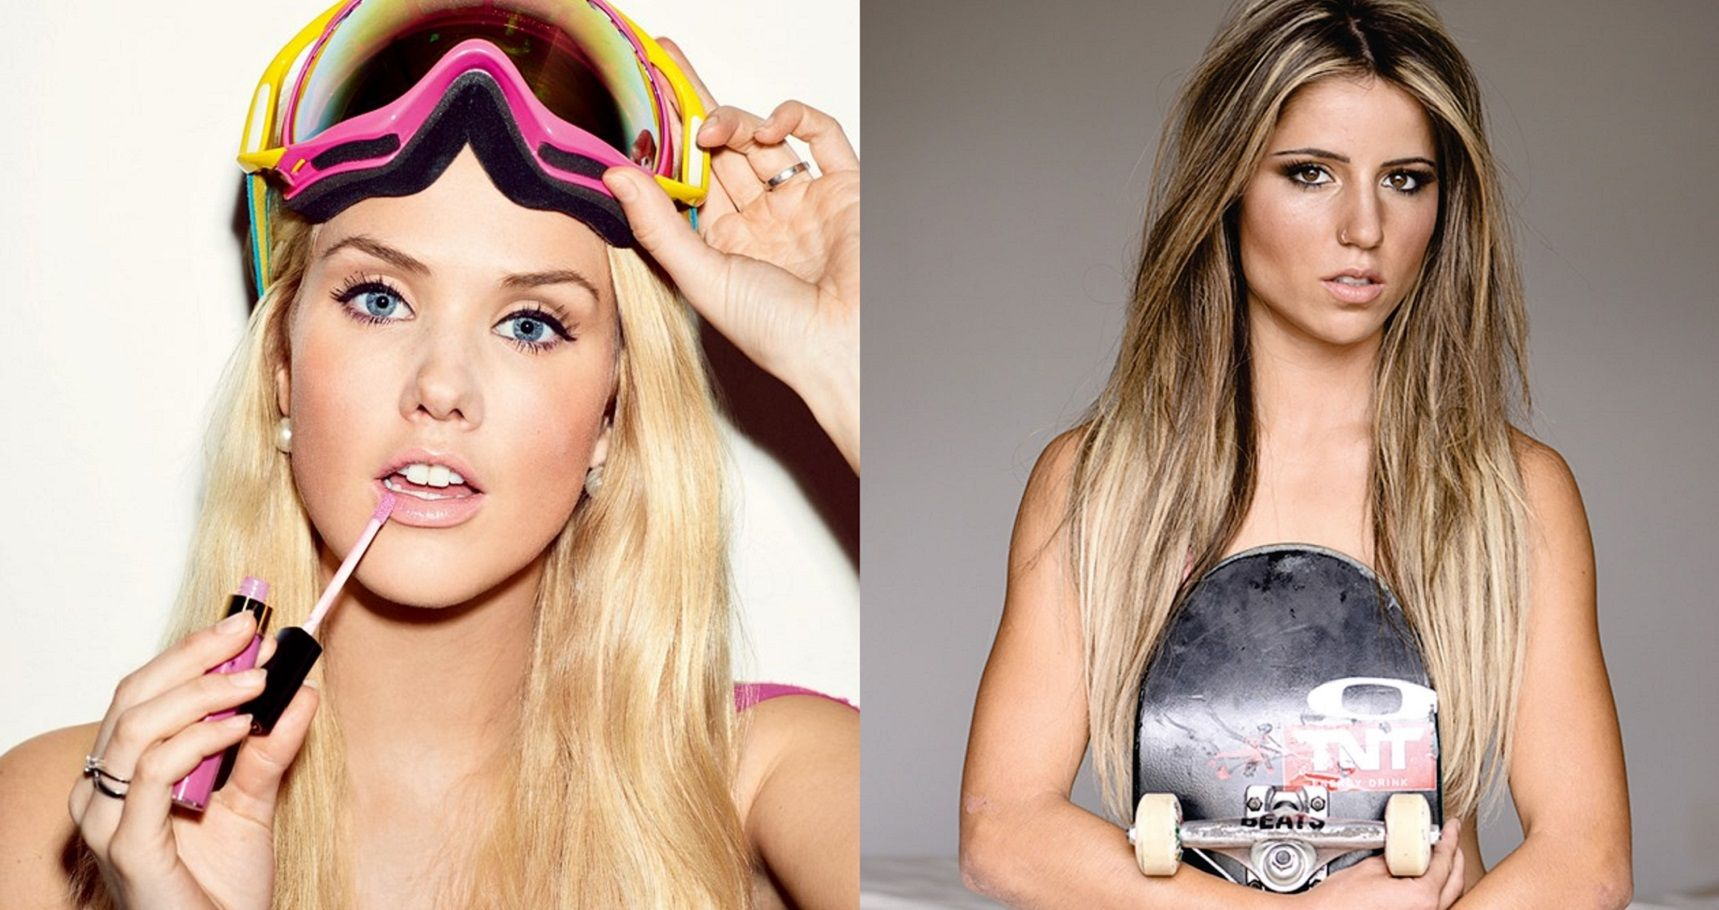 The 20 Hottest Female X-Games Athletes